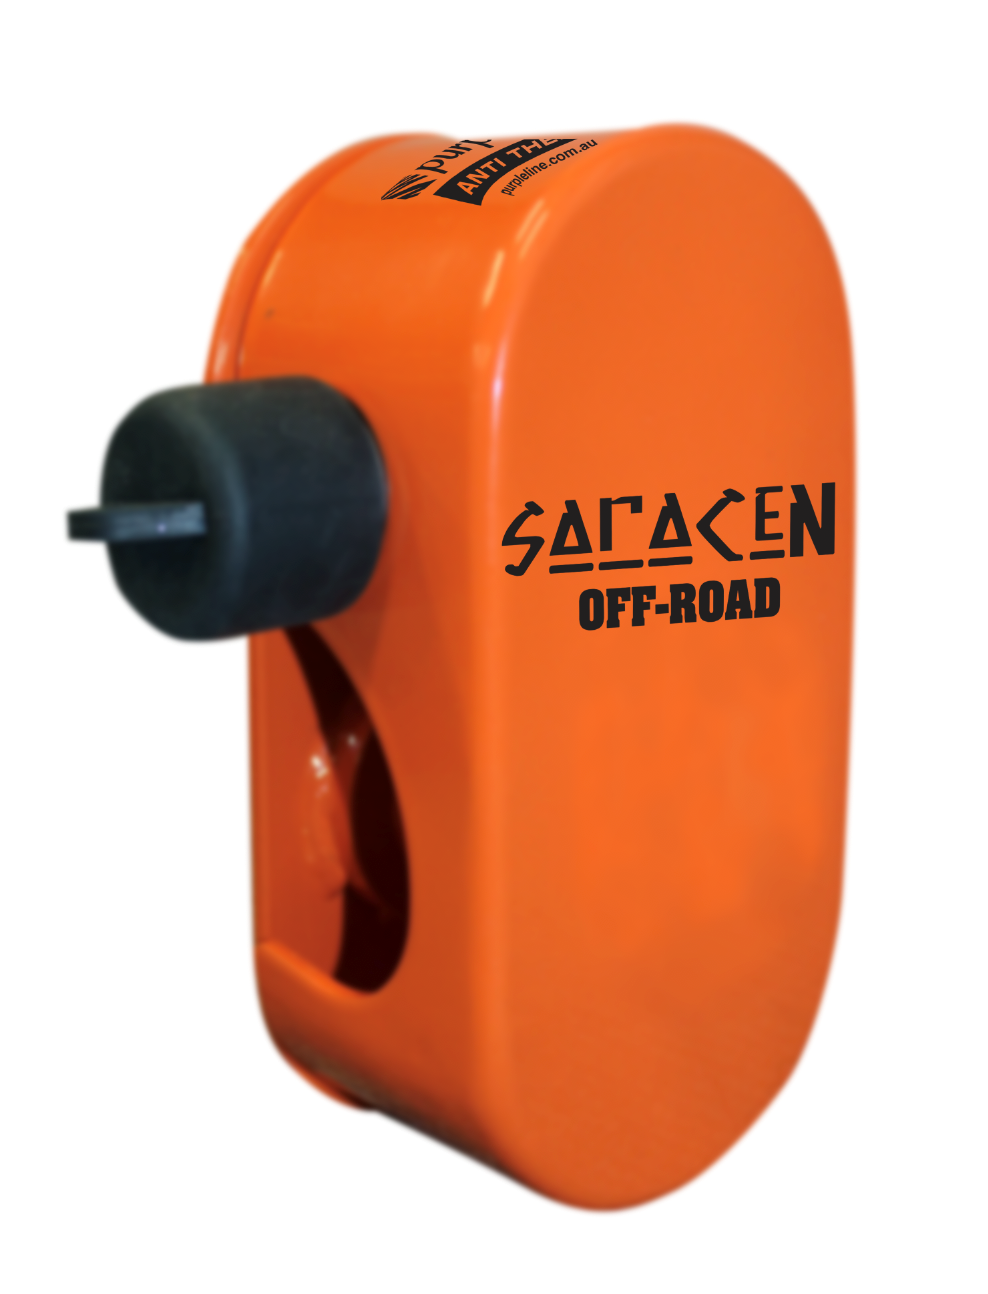 Saracen Off-Road Hitch Lock Fits DO35 V1-V2-V3